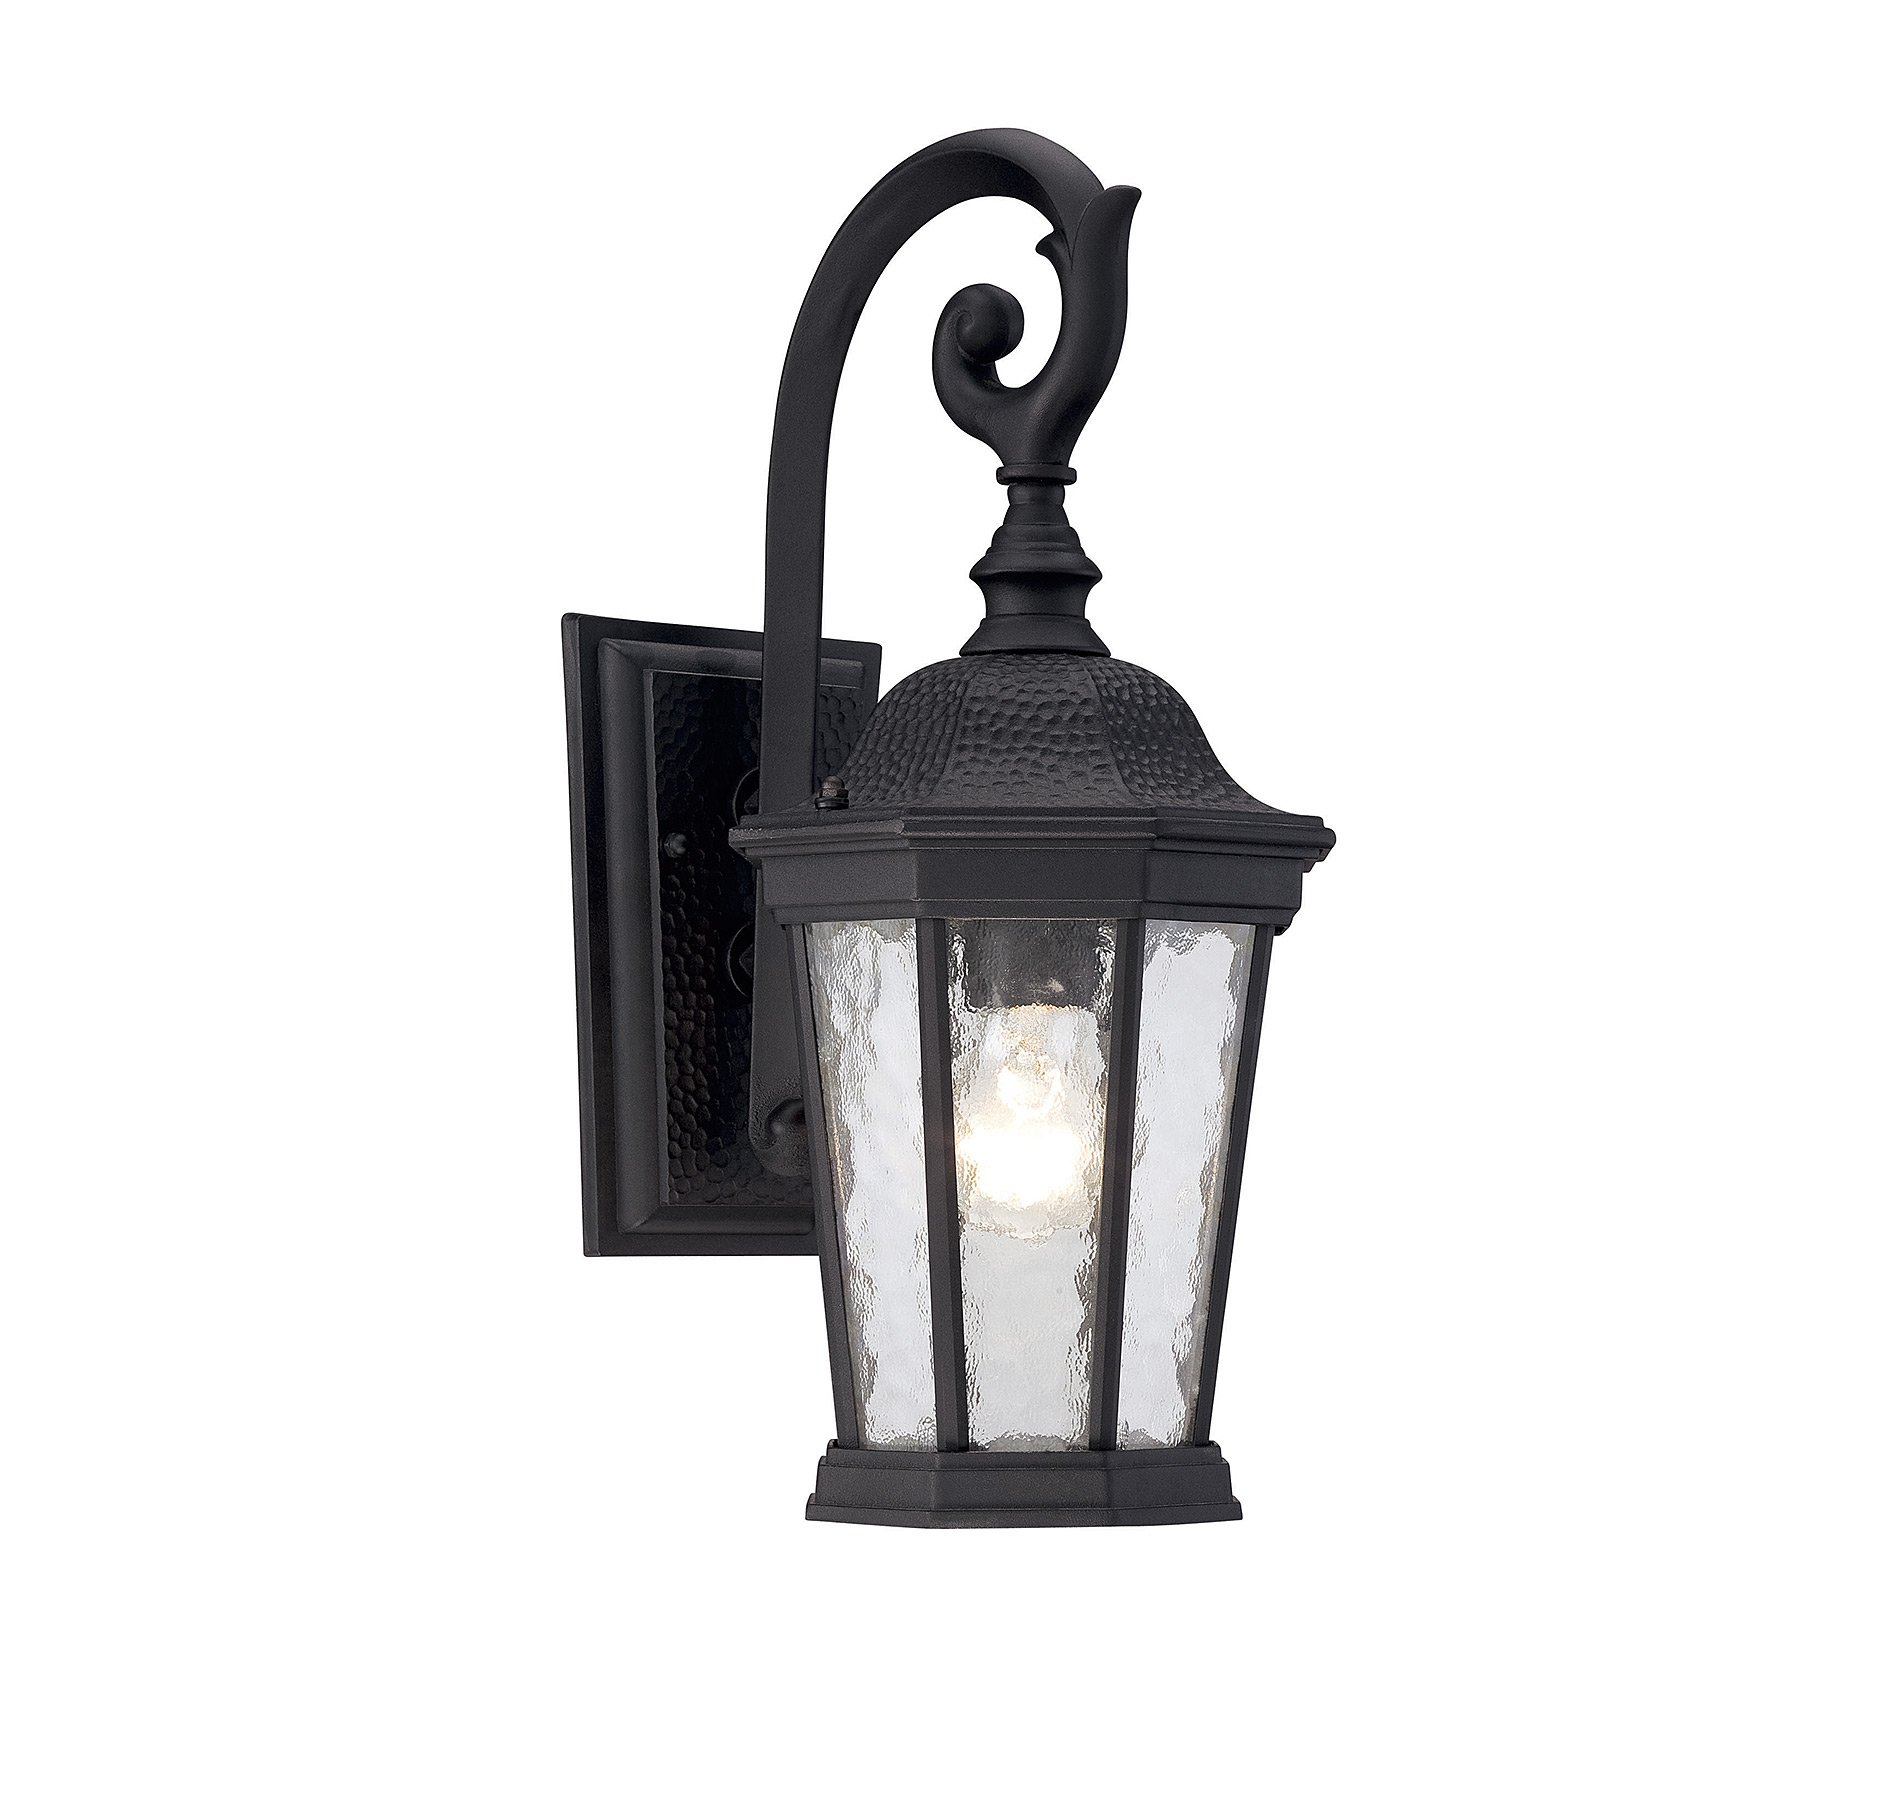 Savoy House 5-5080-BK Hampden Outdoor Wall Lantern in Black